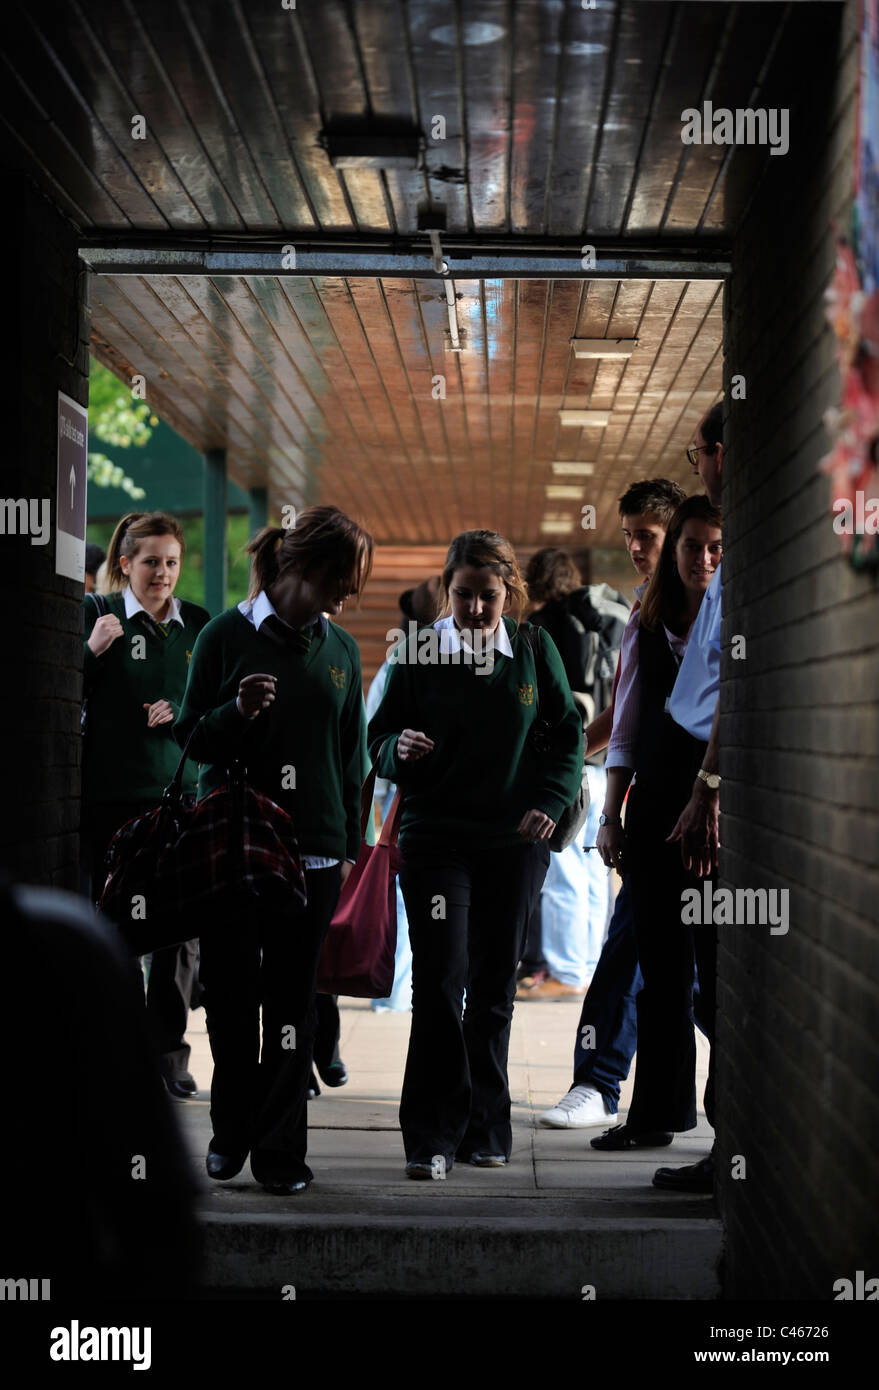 Pupils at a secondary school UK - Stock Image